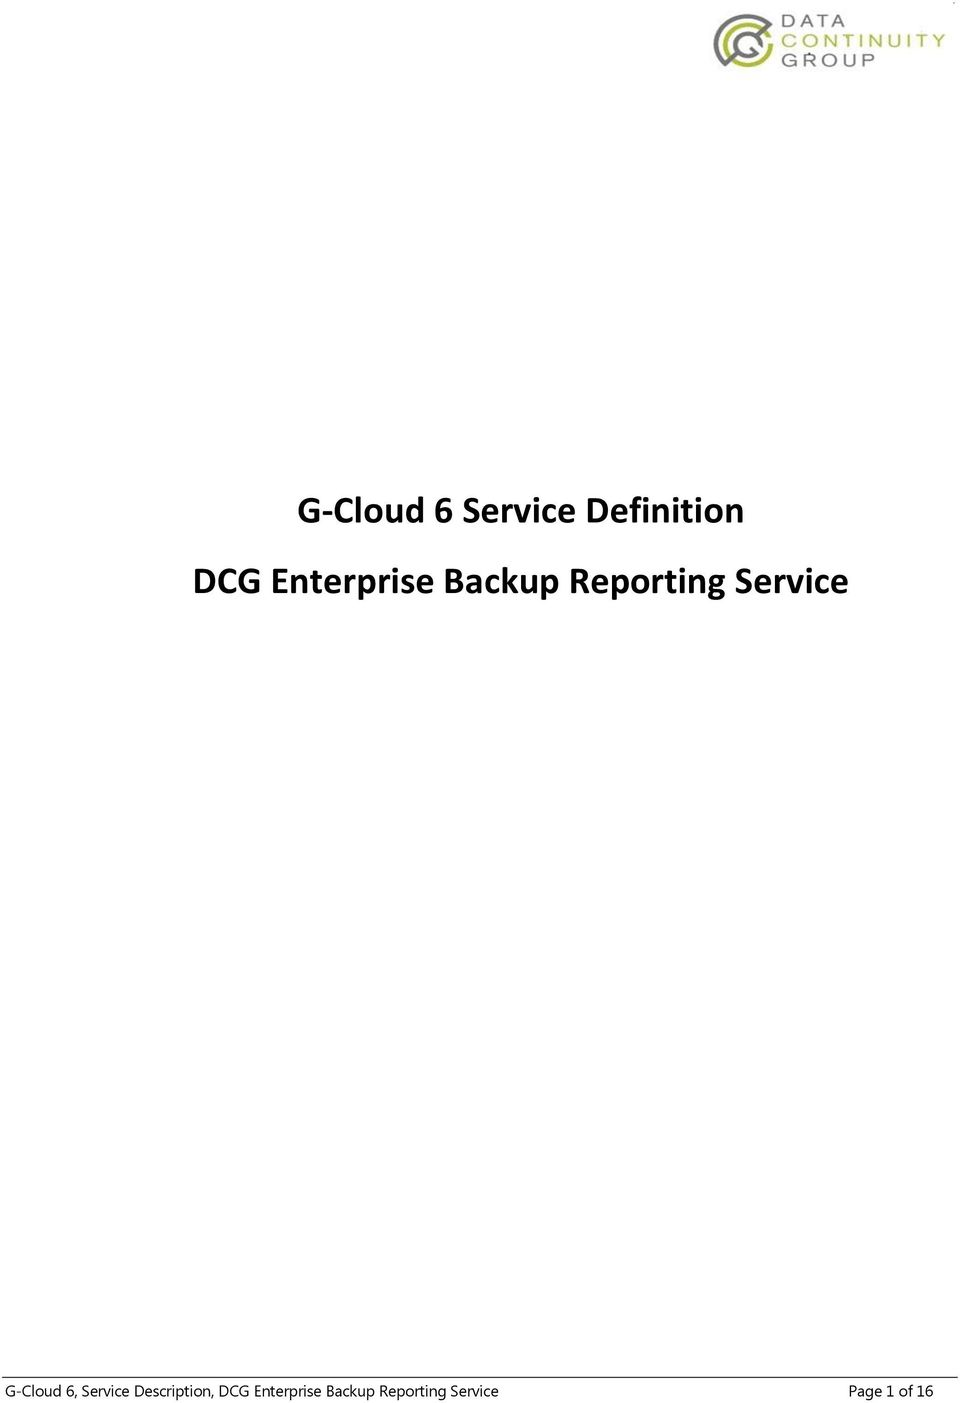 G-Cloud 6, Service Description, DCG